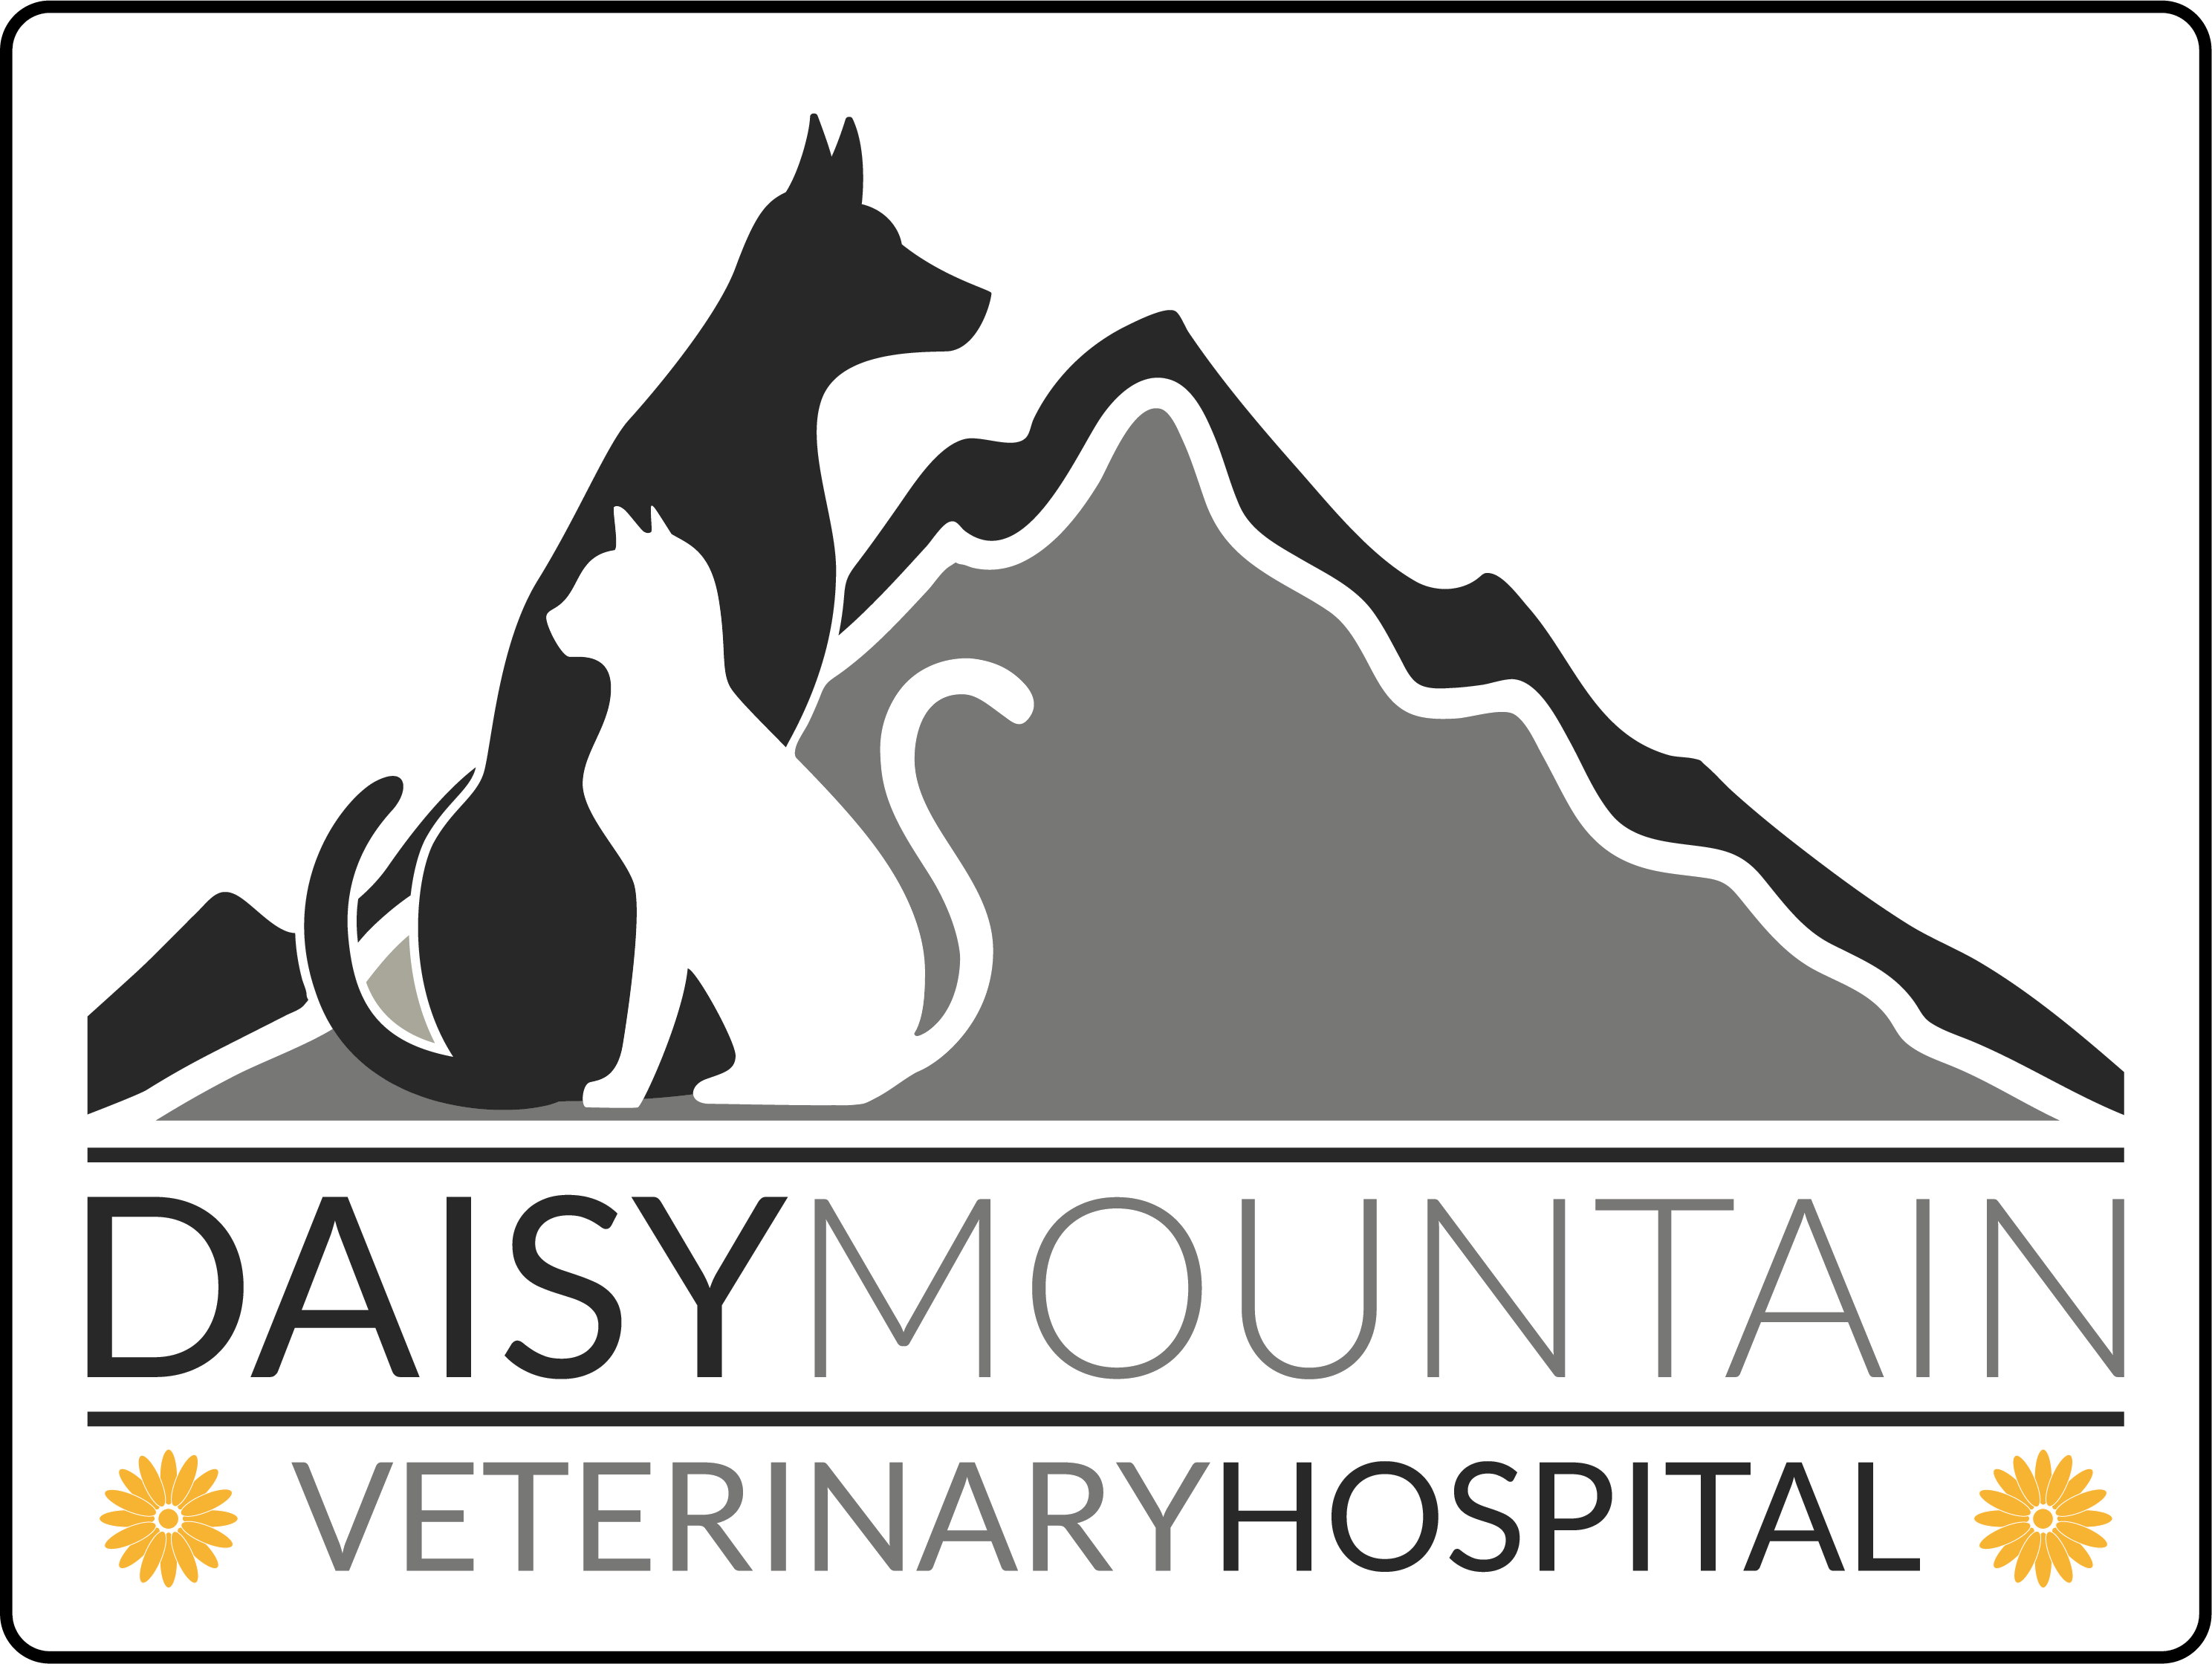 Daisy Mountain Veterinary Hospital